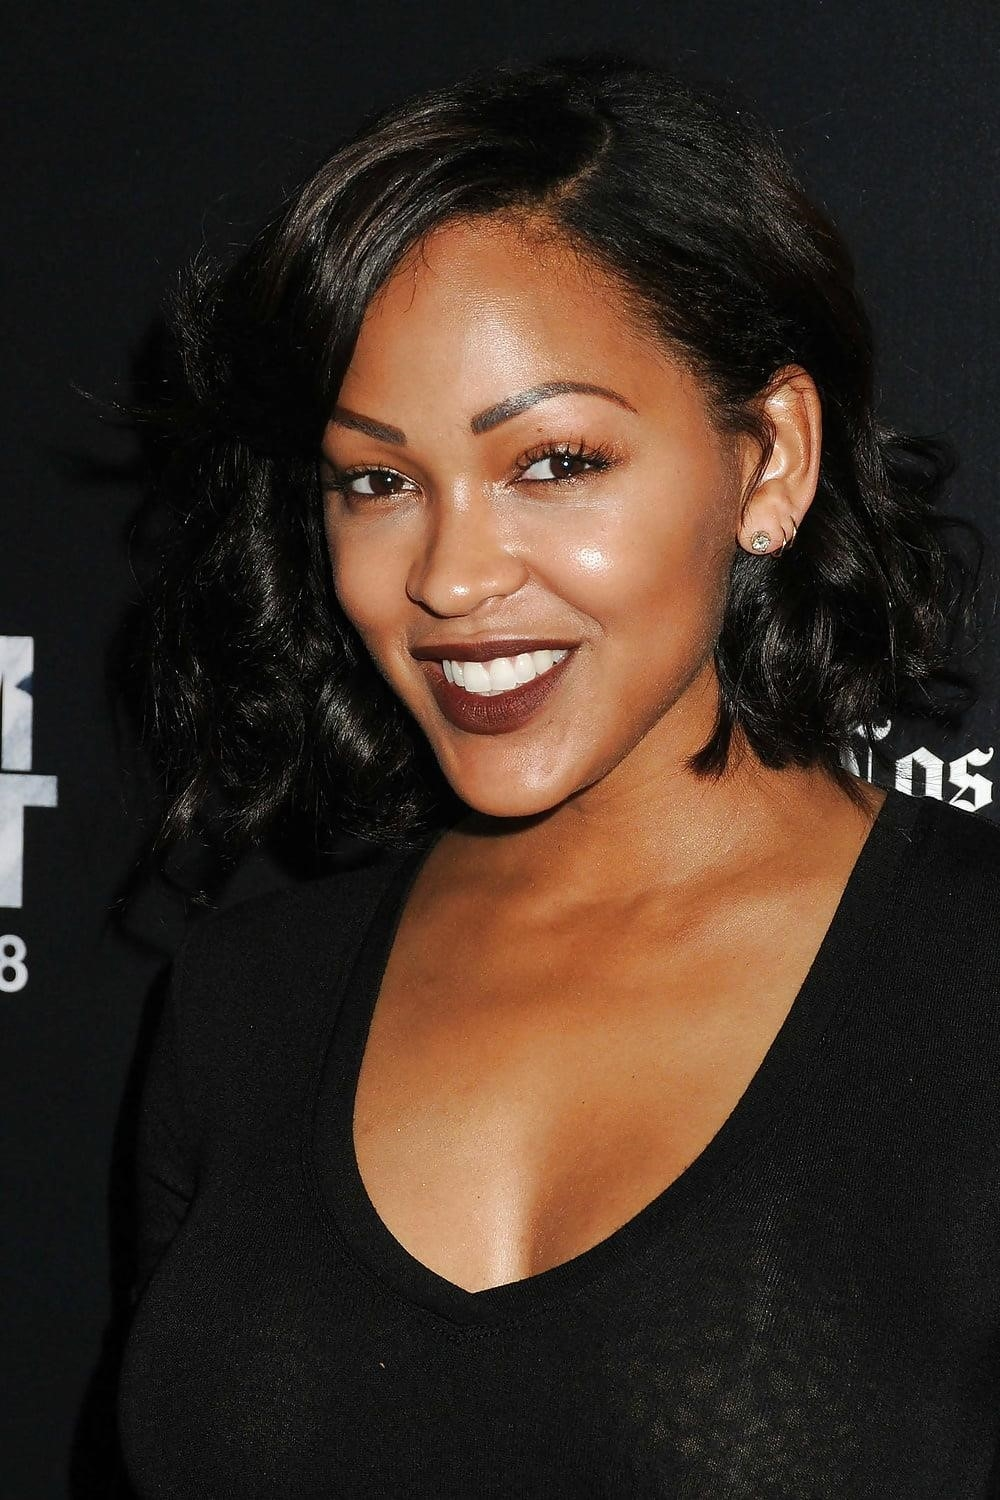 Meagan good nude pictures-4045